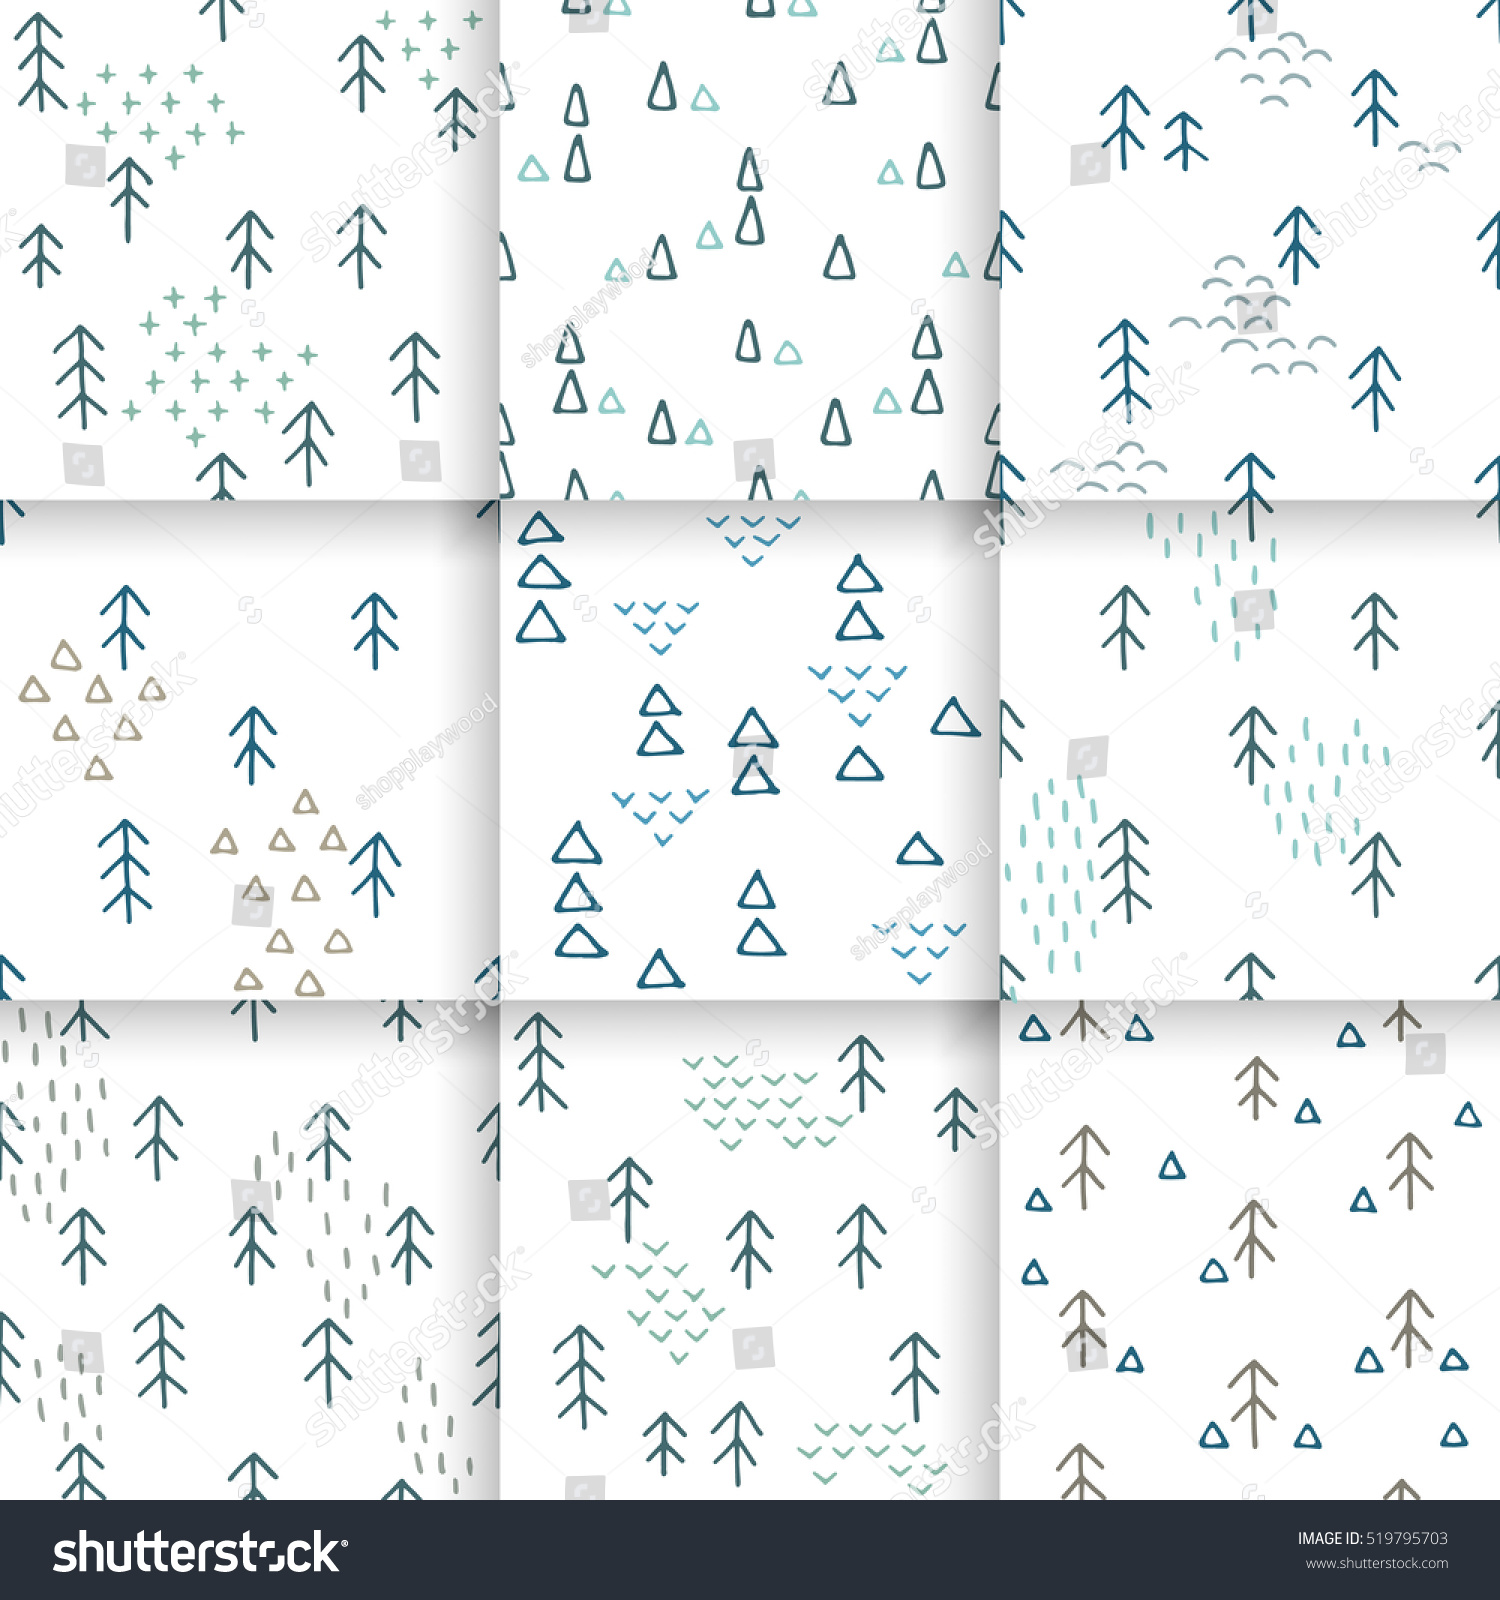 Seamless fir tree scandinavian pattern textile background wrapping - Scandinavian Pattern With Fir Trees And Triangles Seamless Winter Patterns Hand Drawn In Black